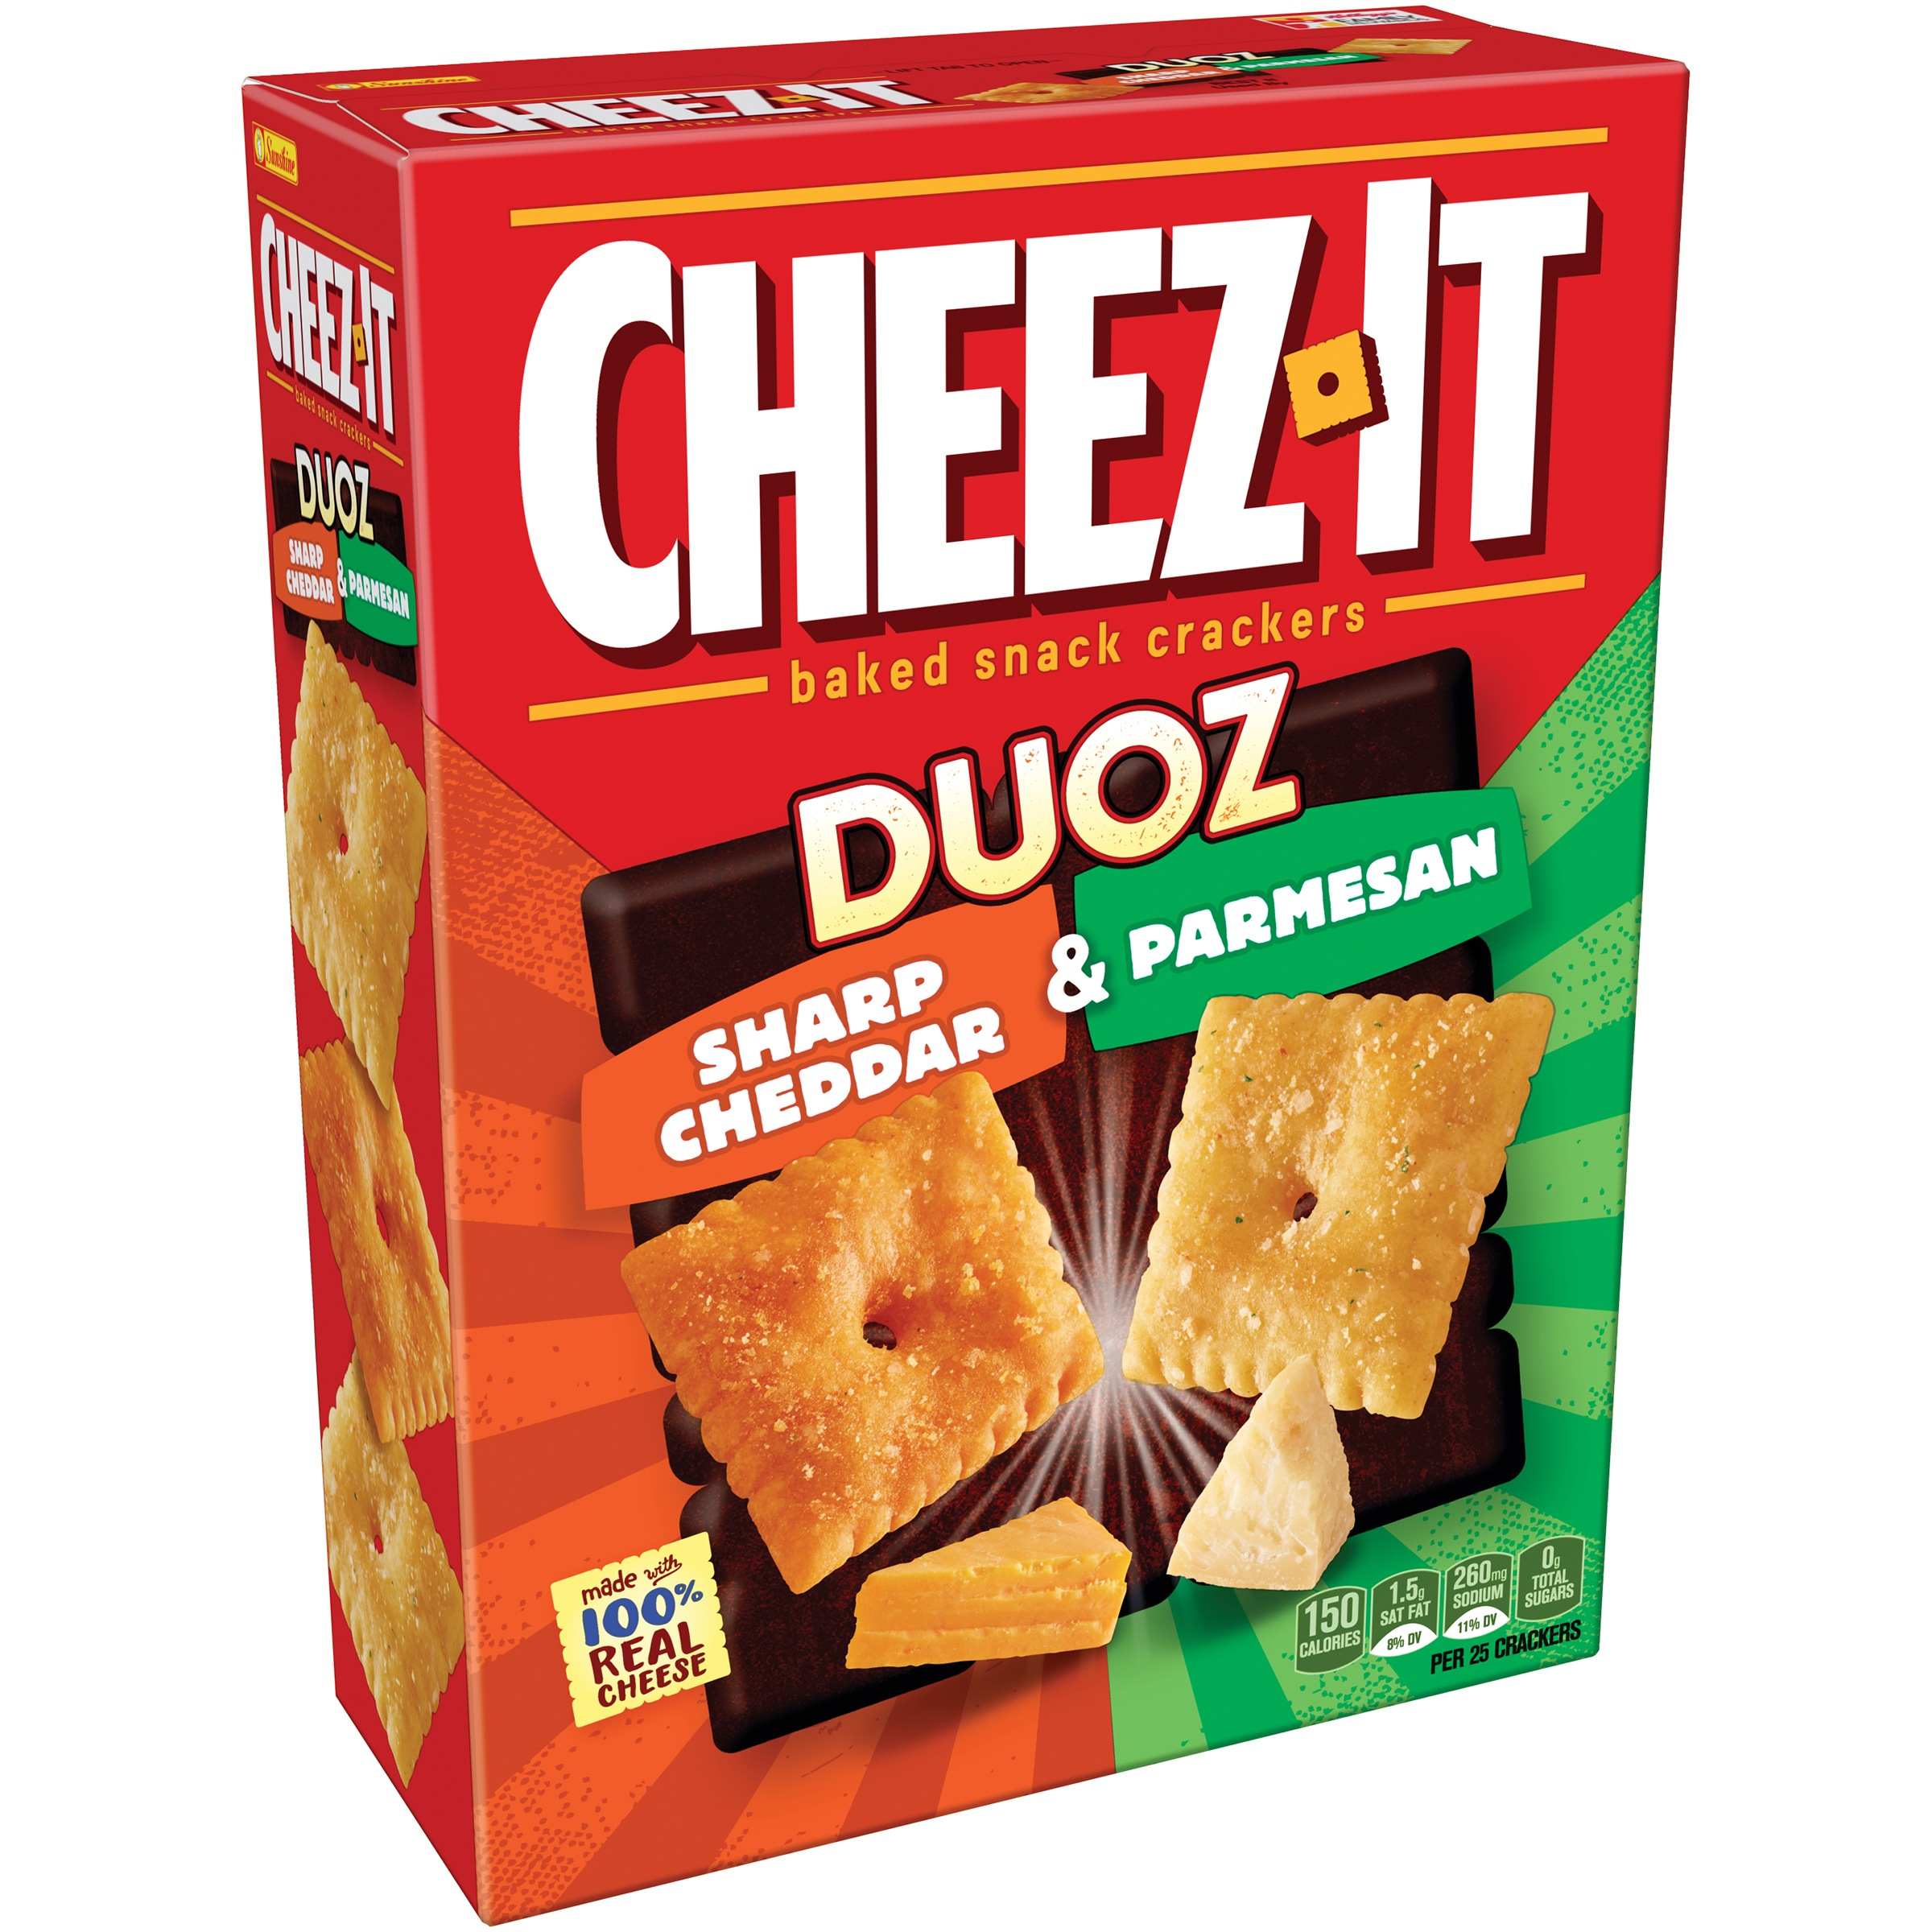 Cheez-It® Duoz Sharp Cheddar & Parmesan Baked Snack Crackers 12.4 oz. Box